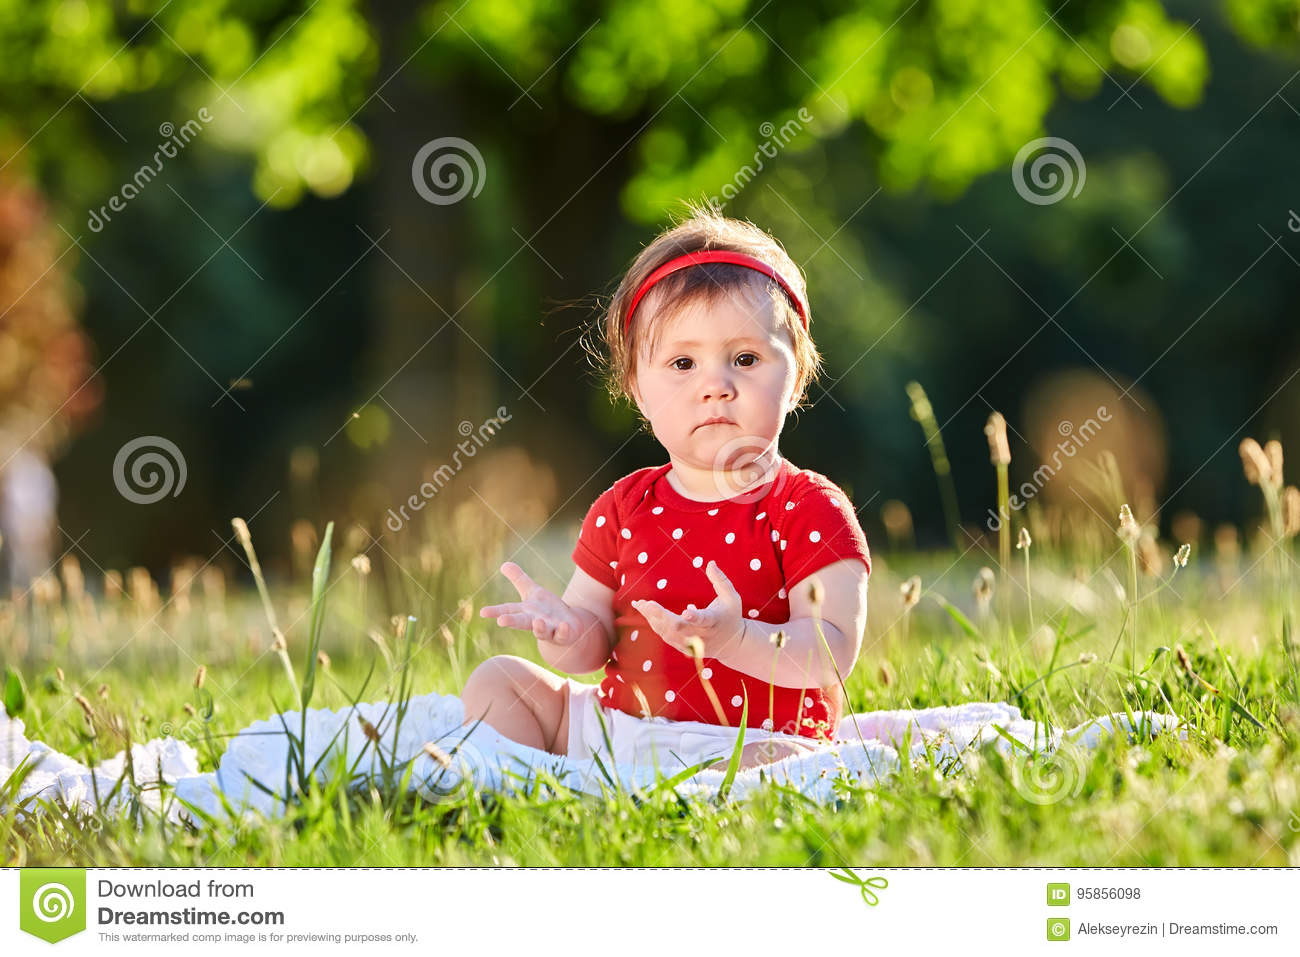 Image of: Baby Girl Cute Adorable Nice Baby Girl In Red Spring Dress Smiling Sitting Under The Tree Dreamstimecom Cute Adorable Nice Baby Girl In Red Spring Dress Smiling Sitting